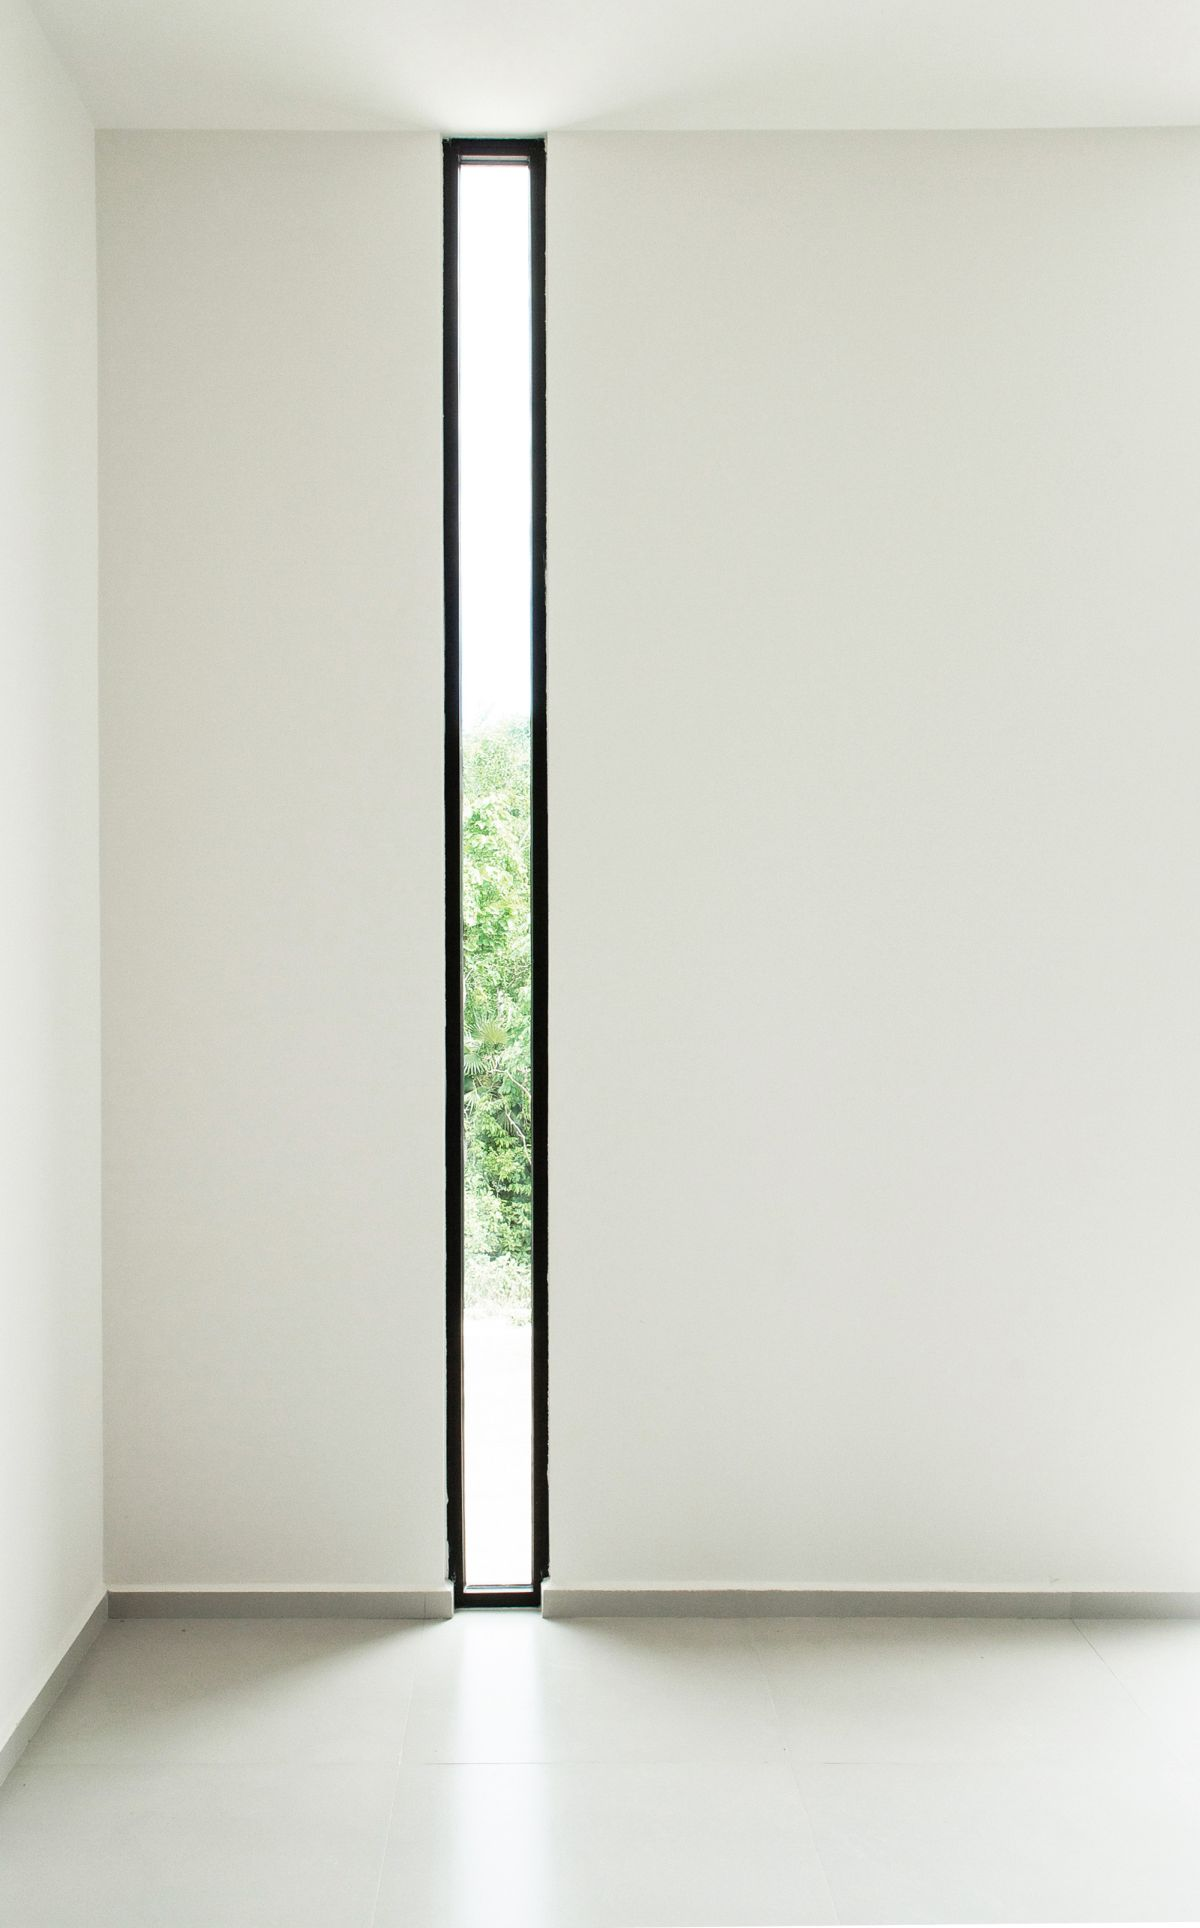 Thin and long window design